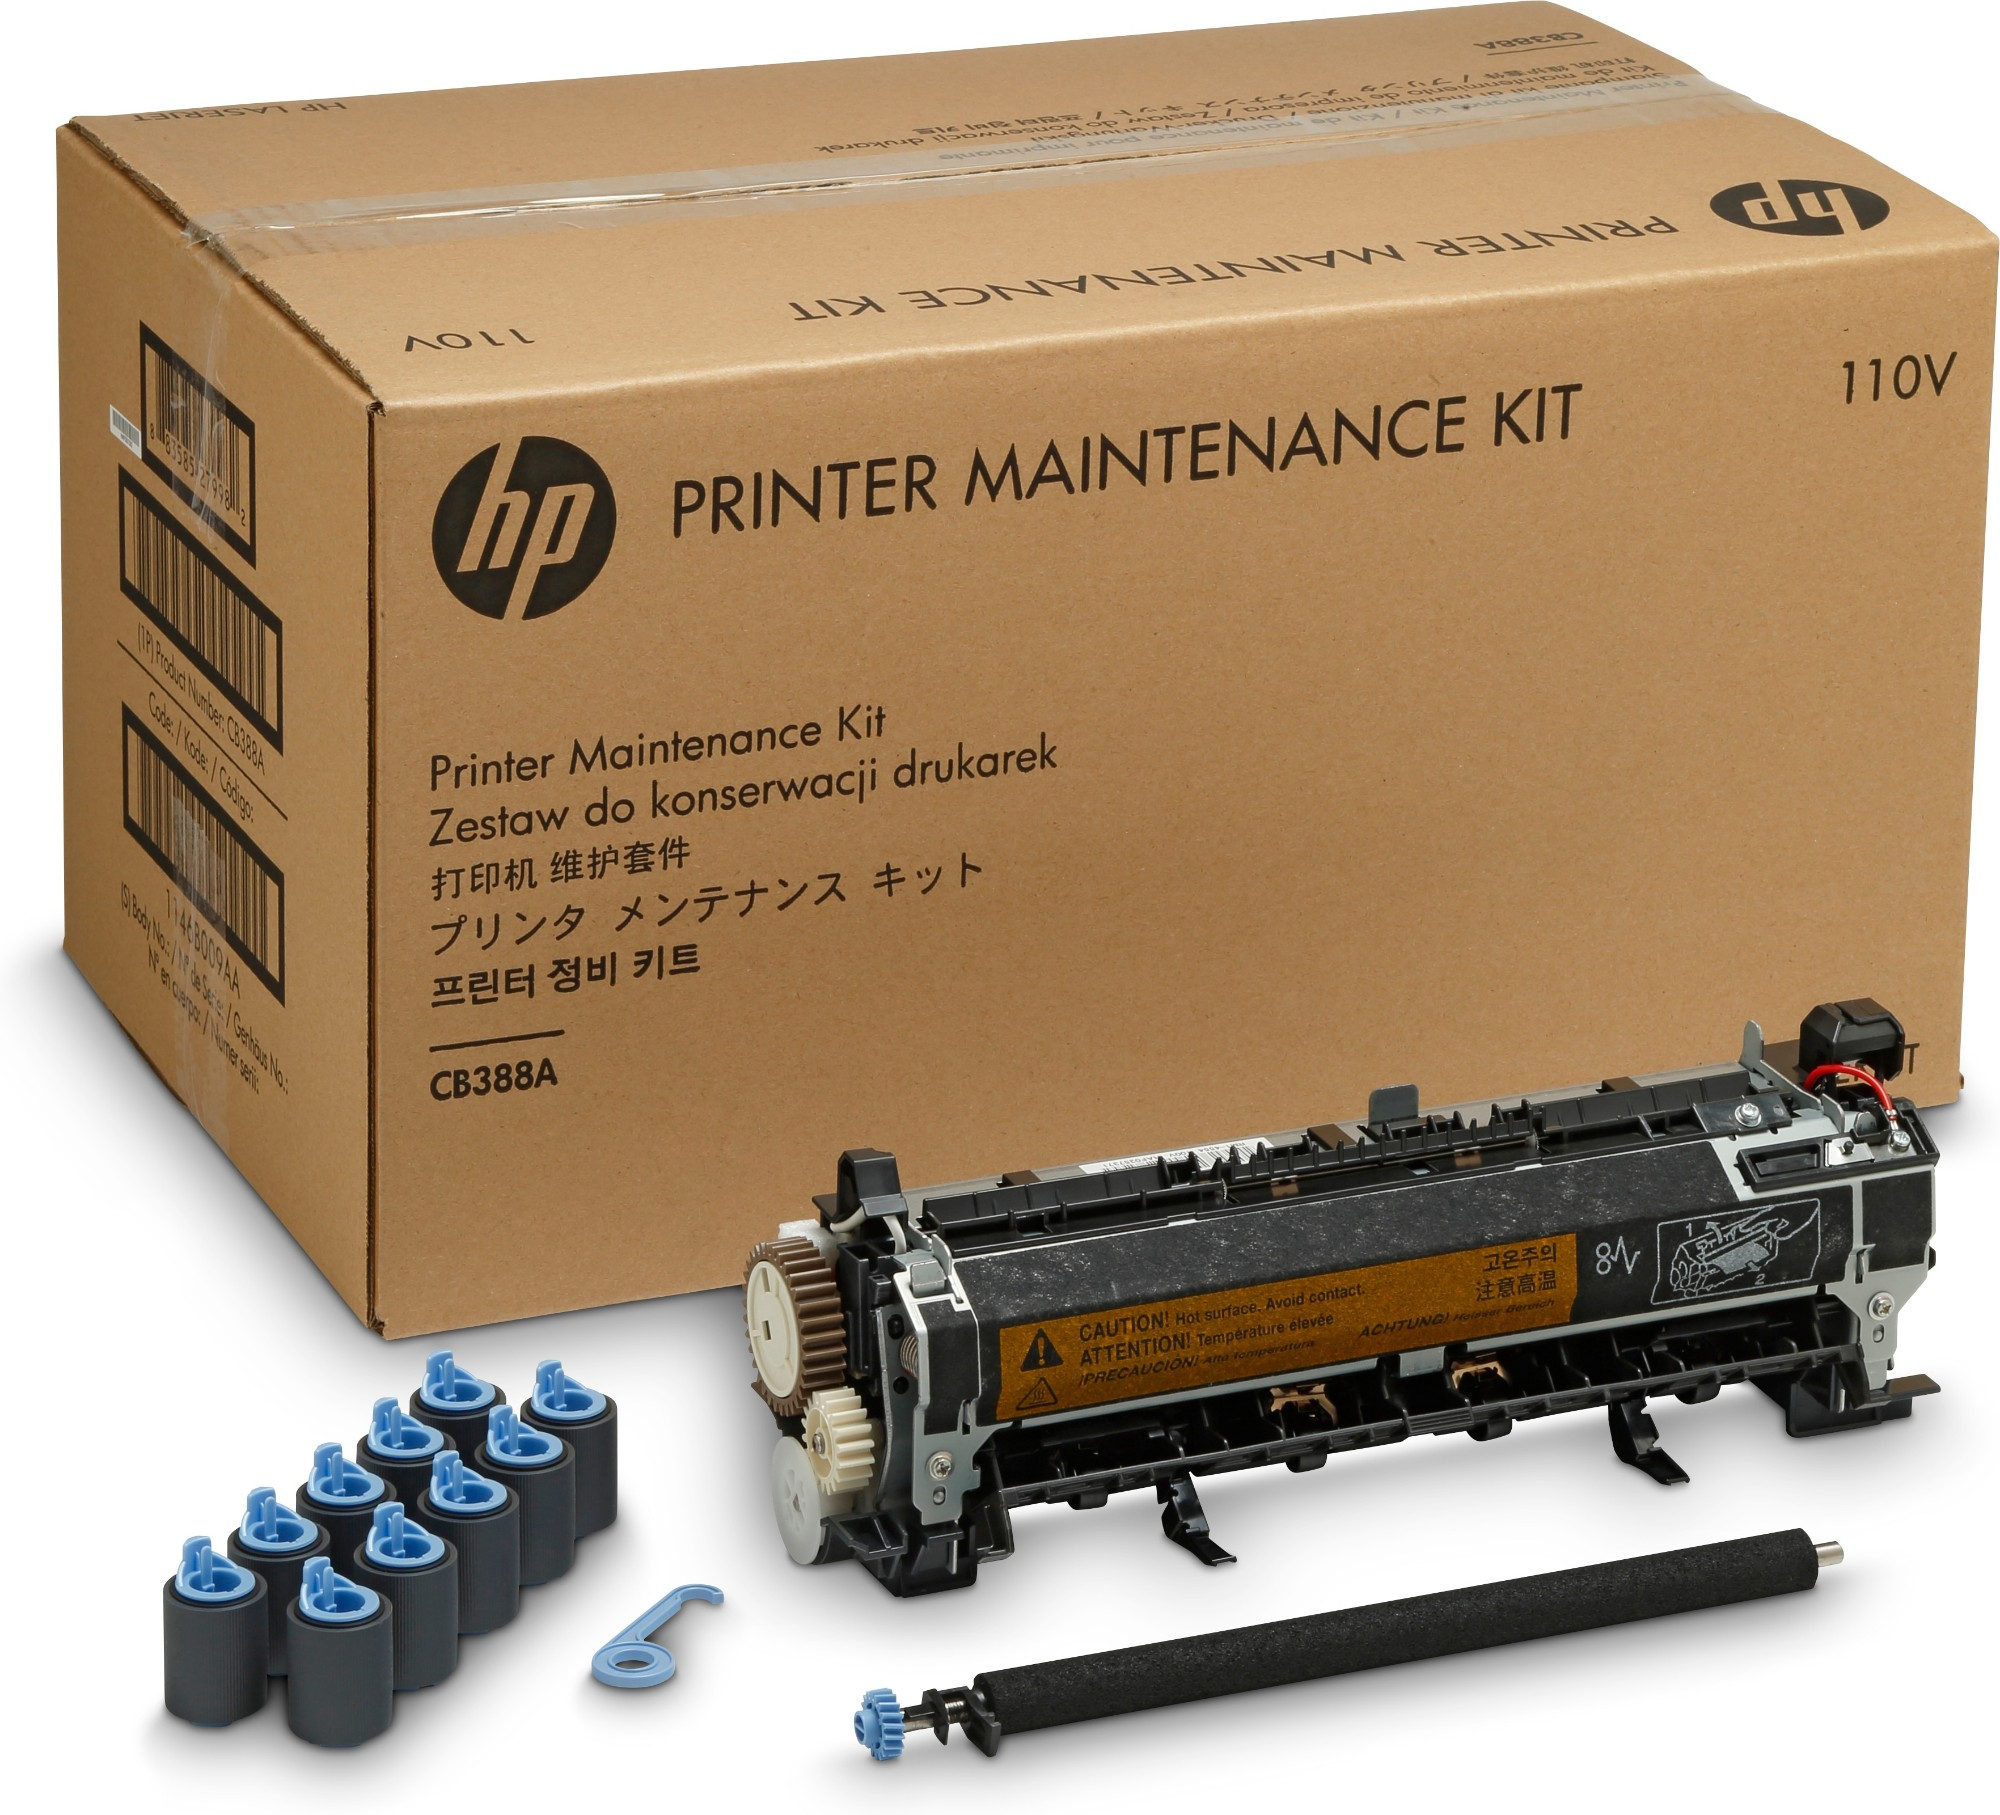 HP CB389A Service-Kit, 225K pages